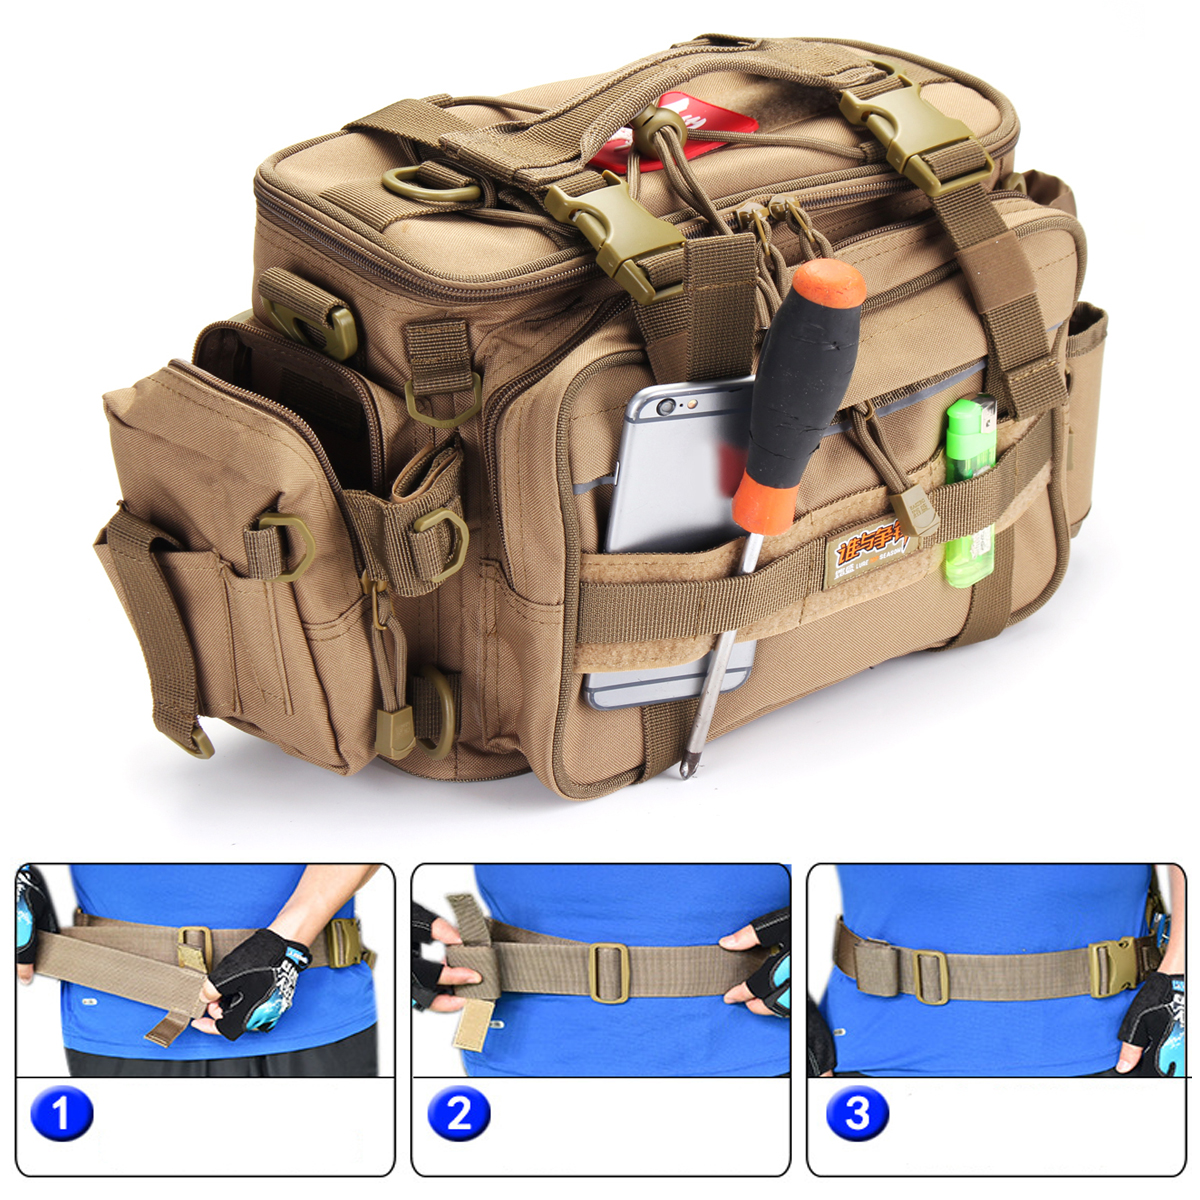 Outdoor Portable Fishing Bag Water Resistant Backpack Multifunctional Bag Salt/Freshwater Fishing